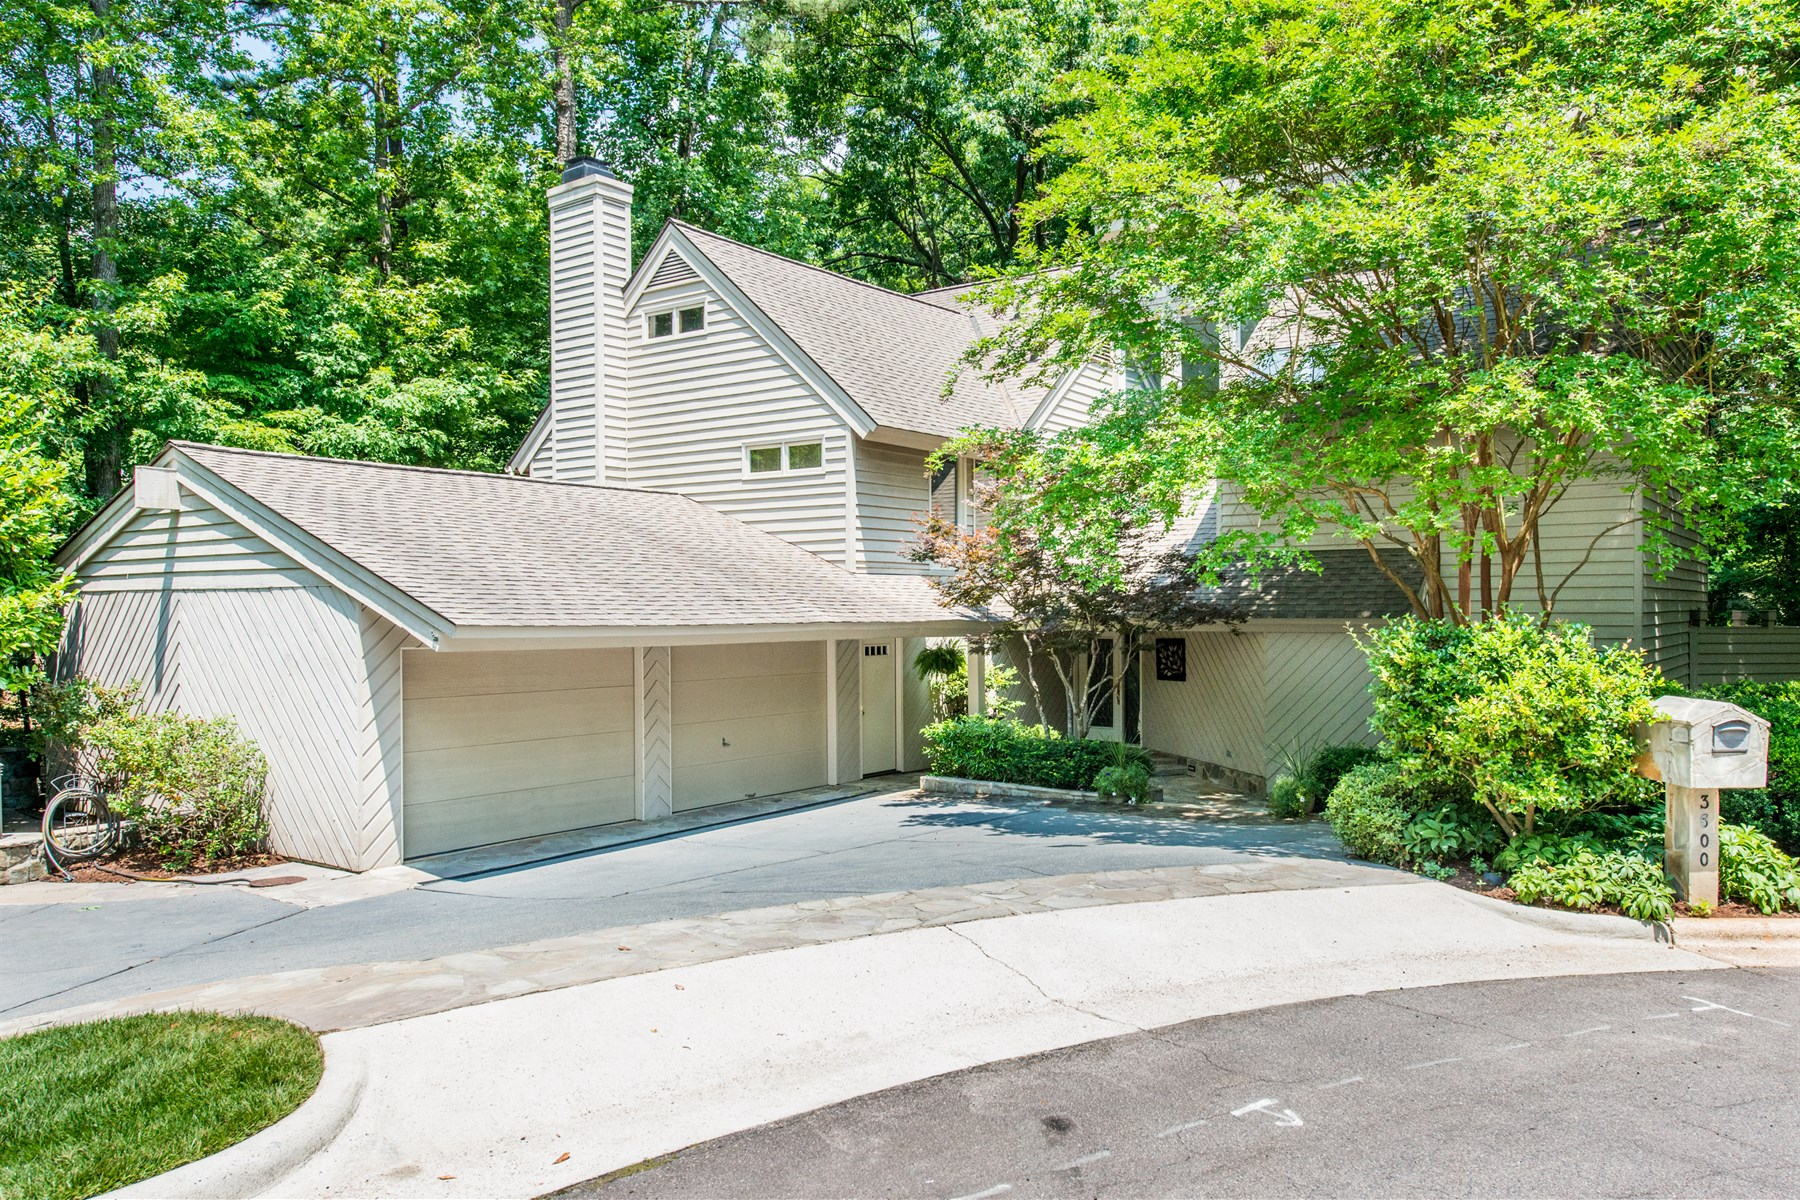 Single Family Home for Sale at Coley Forest Contemporary 3600 Ranlo Drive Raleigh, North Carolina 27612 United States